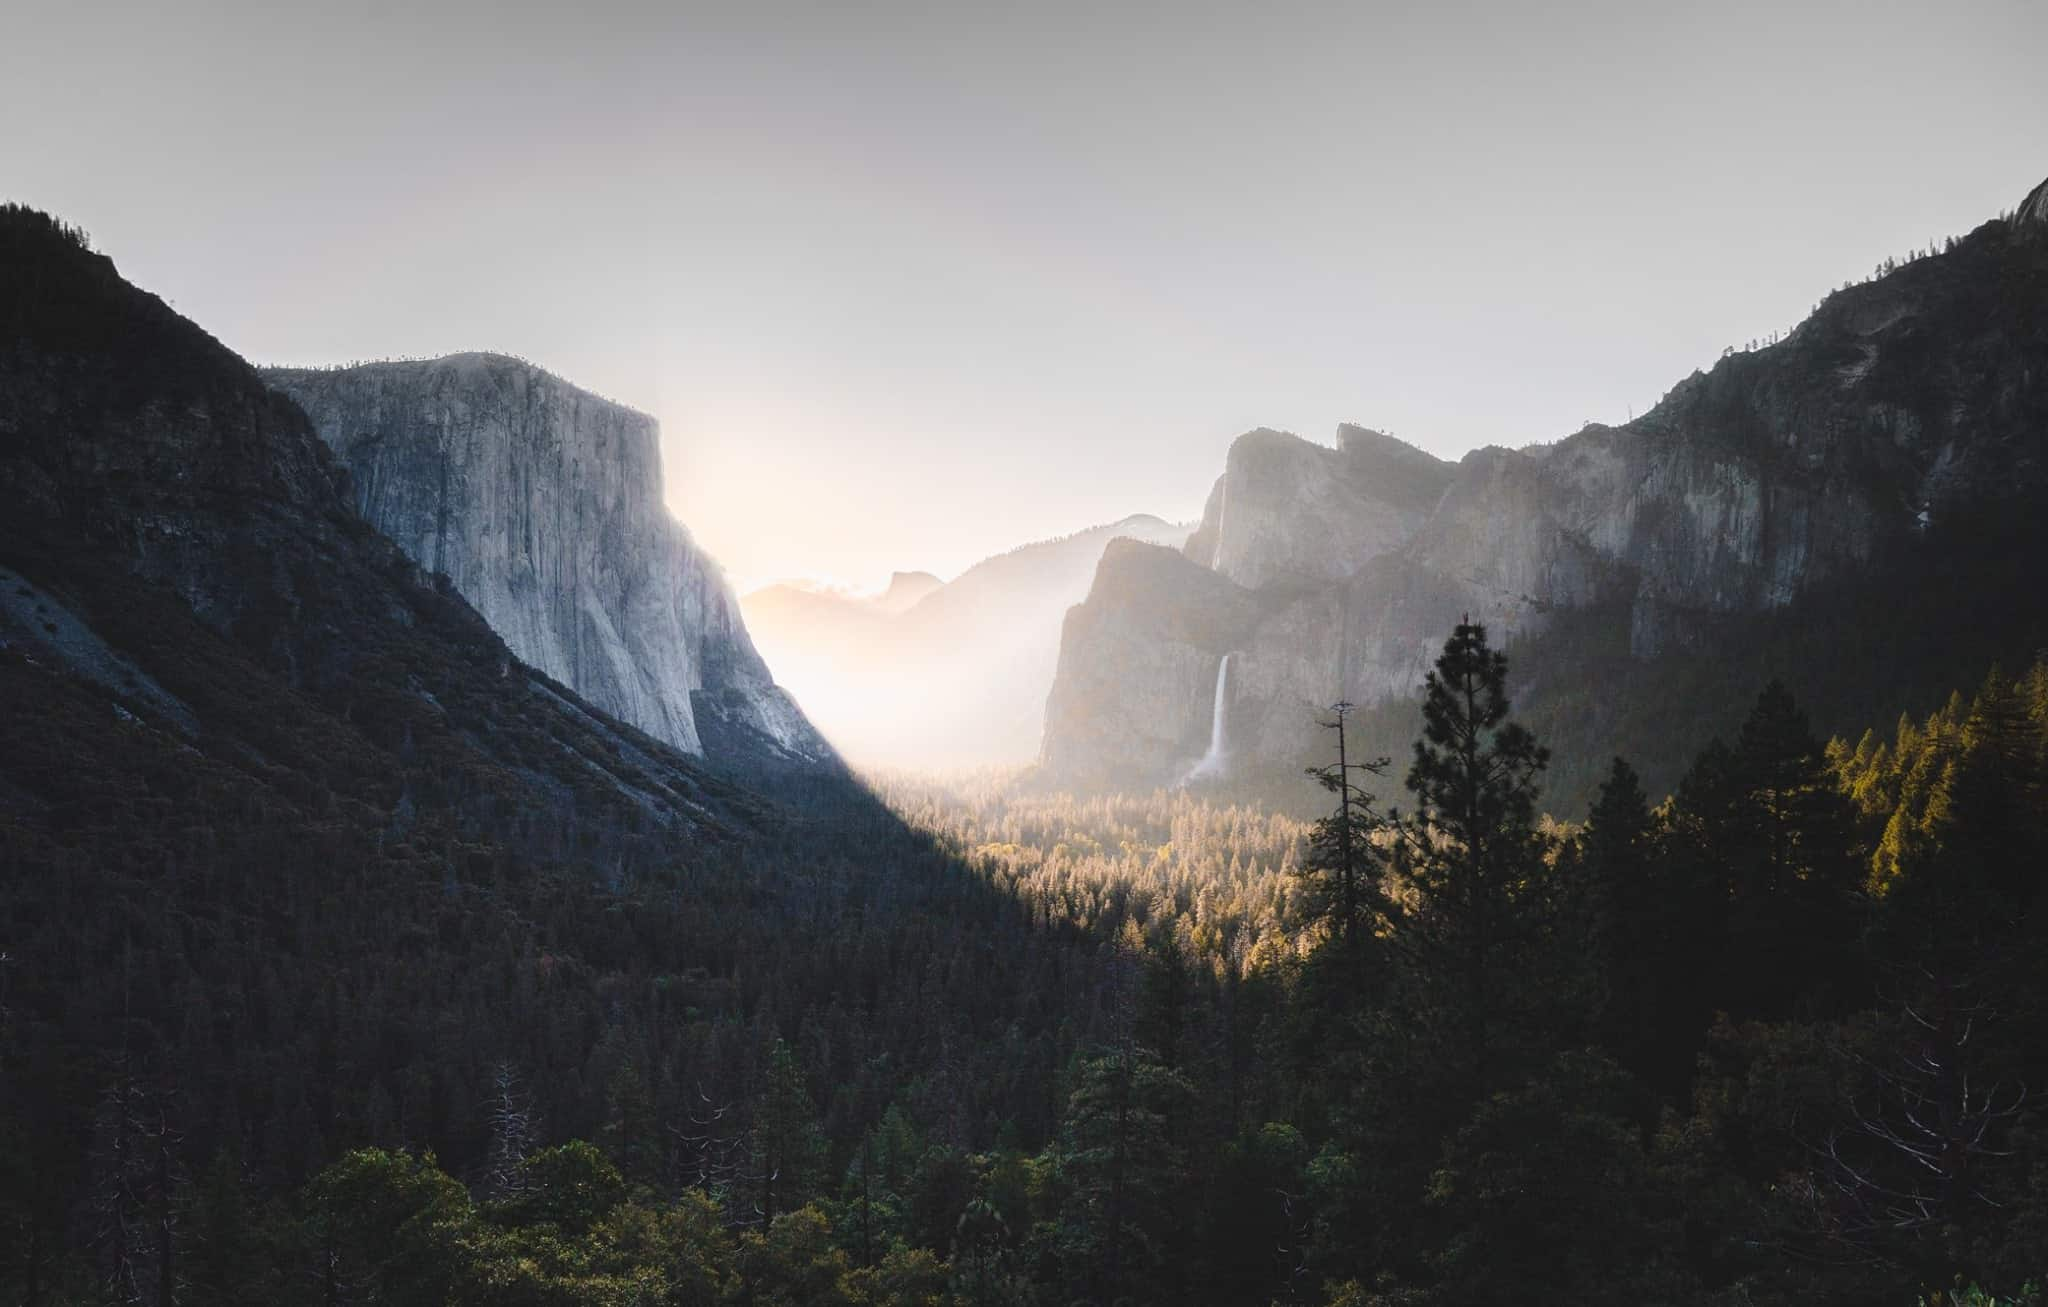 Beautiful image of Tunnel View in Yosemite